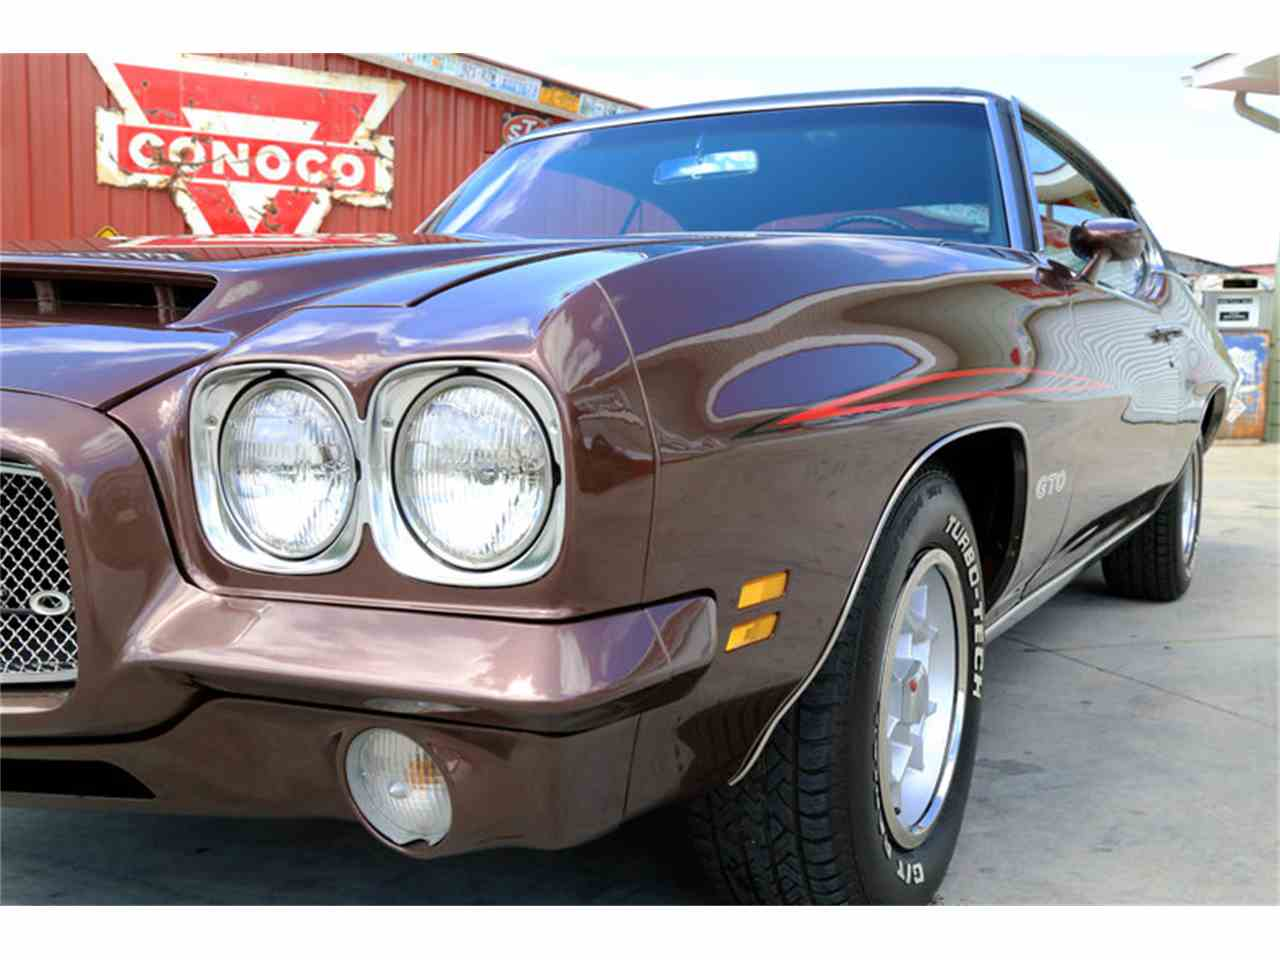 Large Picture of Classic '71 GTO located in Lenoir City Tennessee - $36,995.00 - HKO3